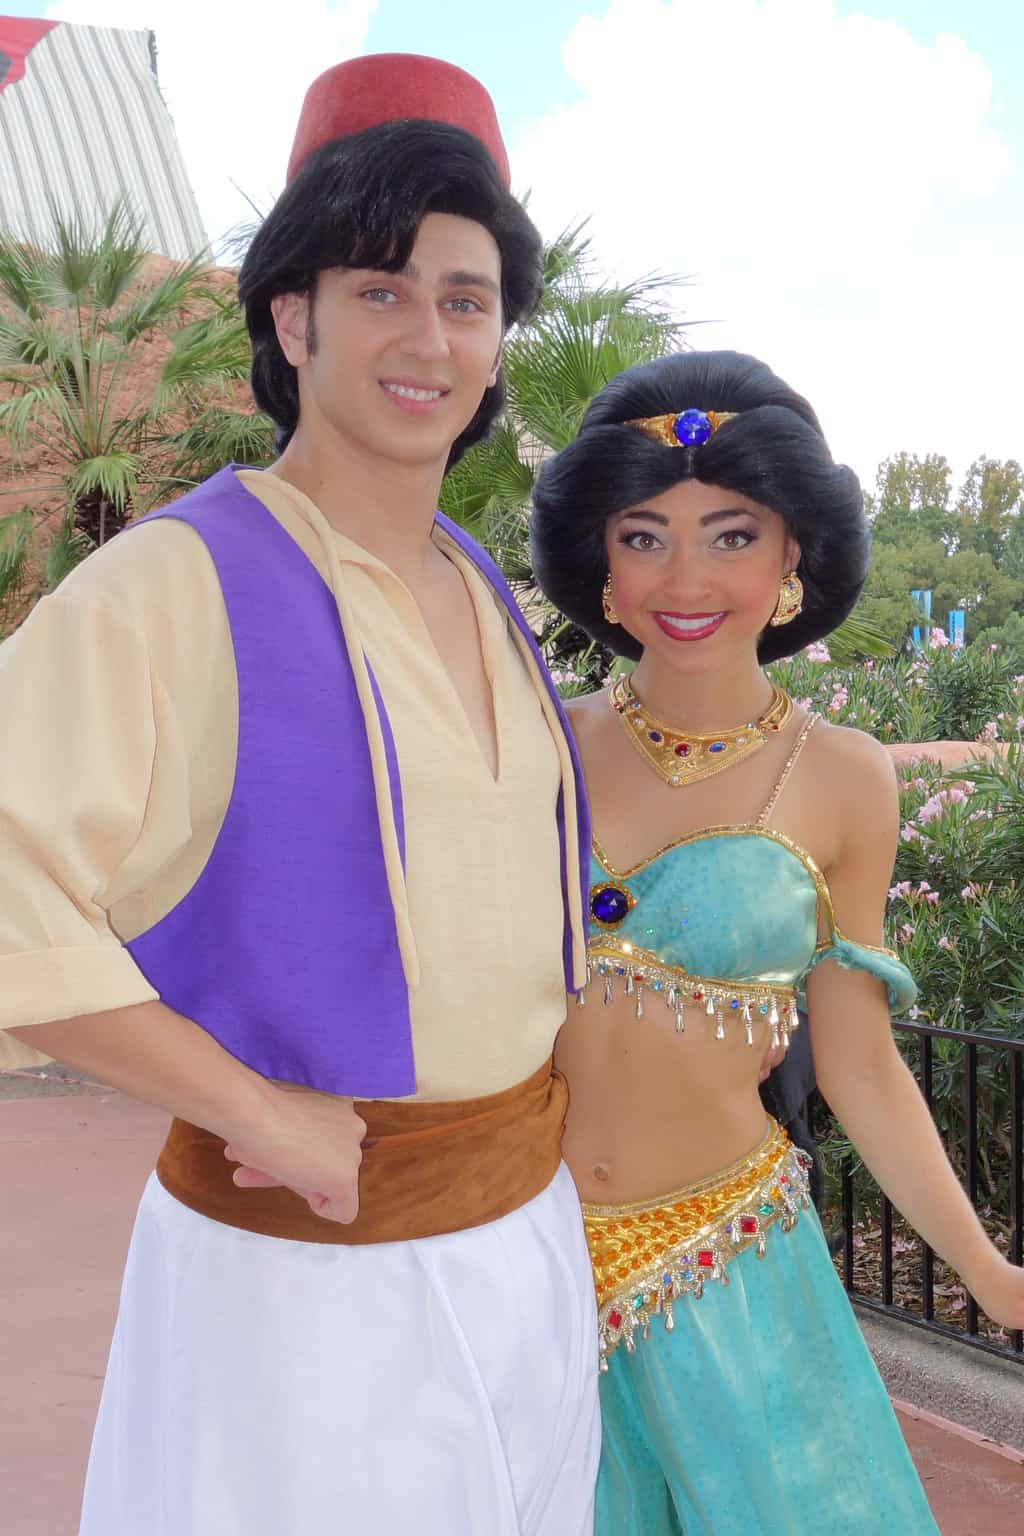 Aladdin And Jasmine At Morocco In Epcot Kennythepirate